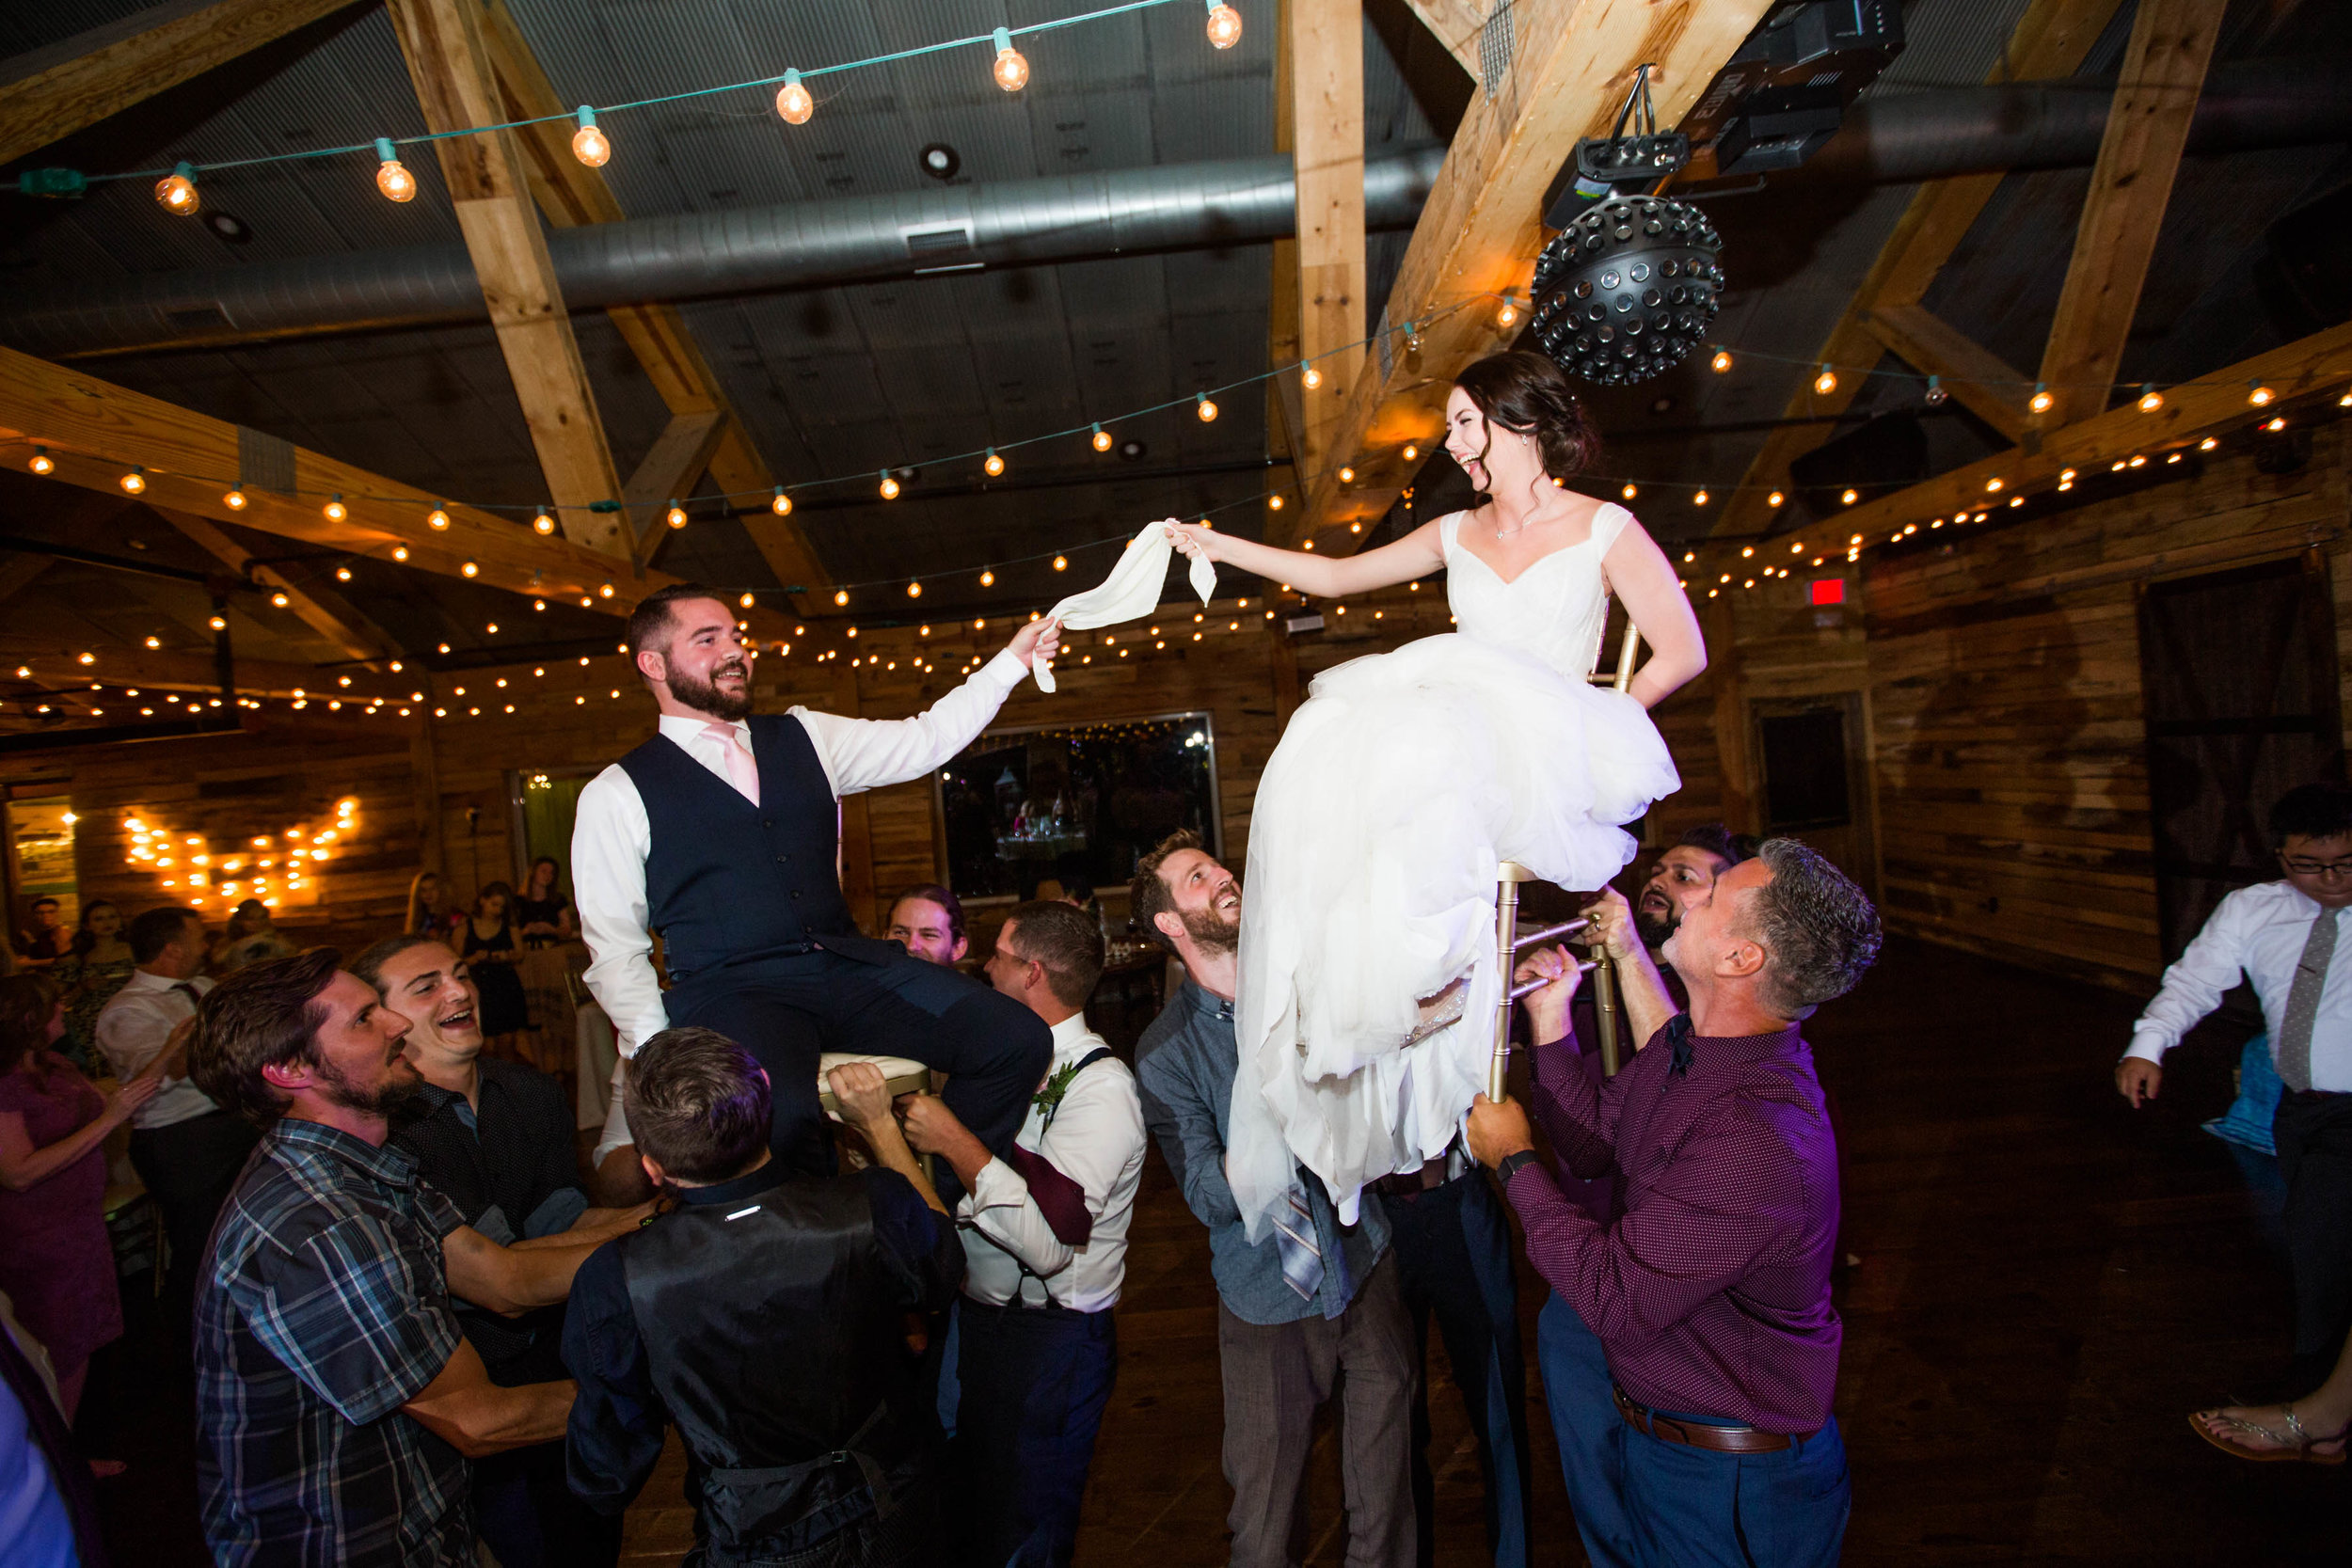 oklahoma_wedding_photographer_southwind_hills-75.jpg